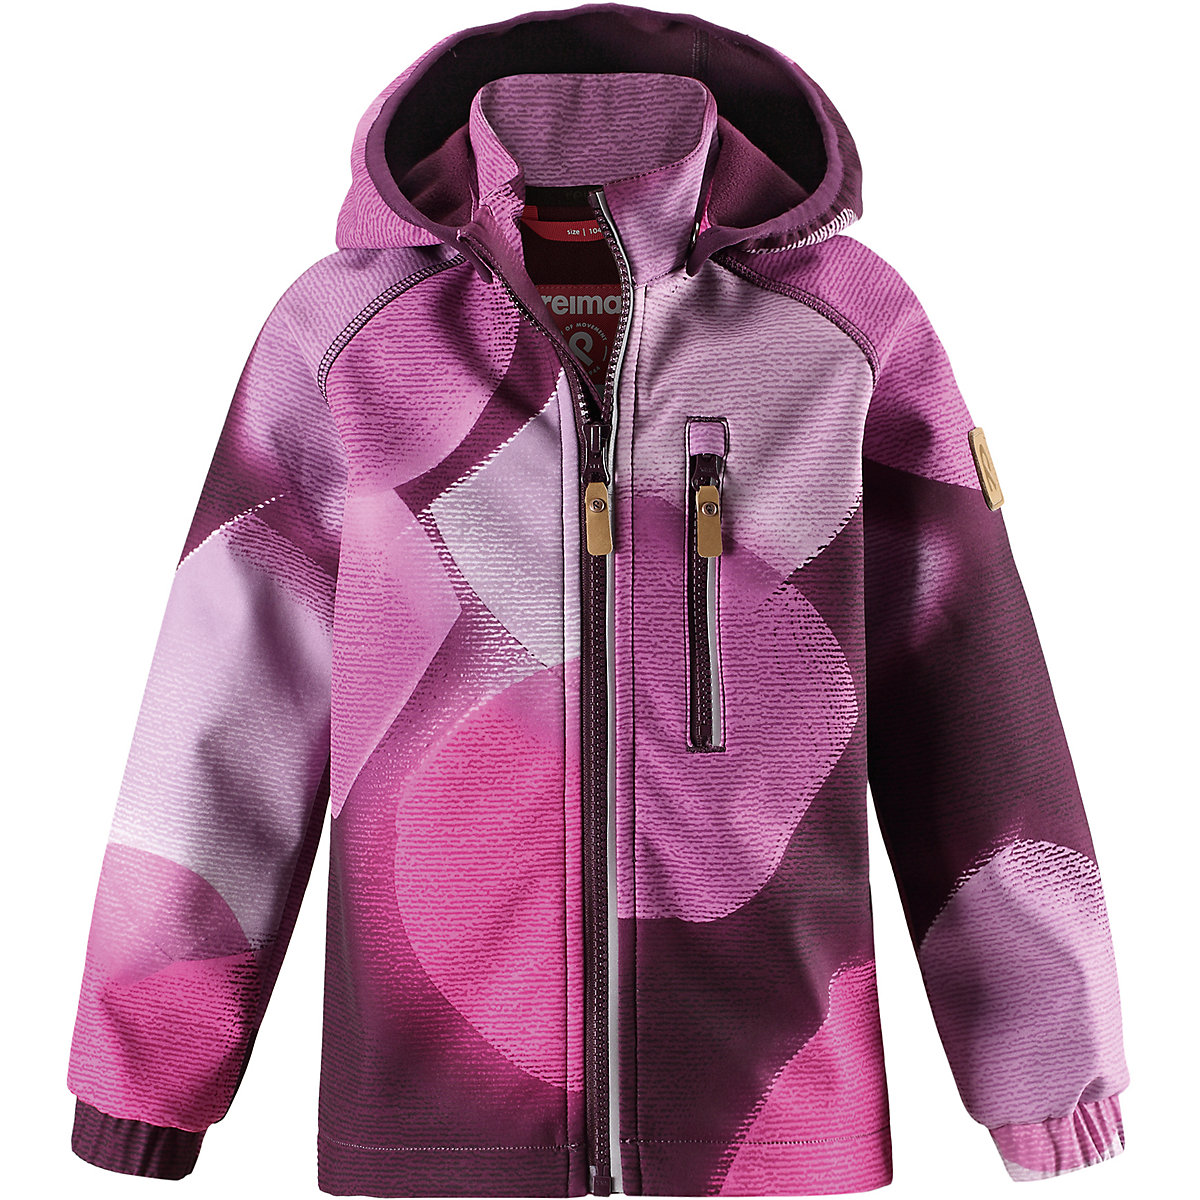 REIMA Jackets & Coats 8688822 for girls baby clothing winter warm boy girl jacket Polyester scotch ccwz brand business thick winter jacket men parkas warm overcoat outerwear casual jackets and coats for men clothing 9907